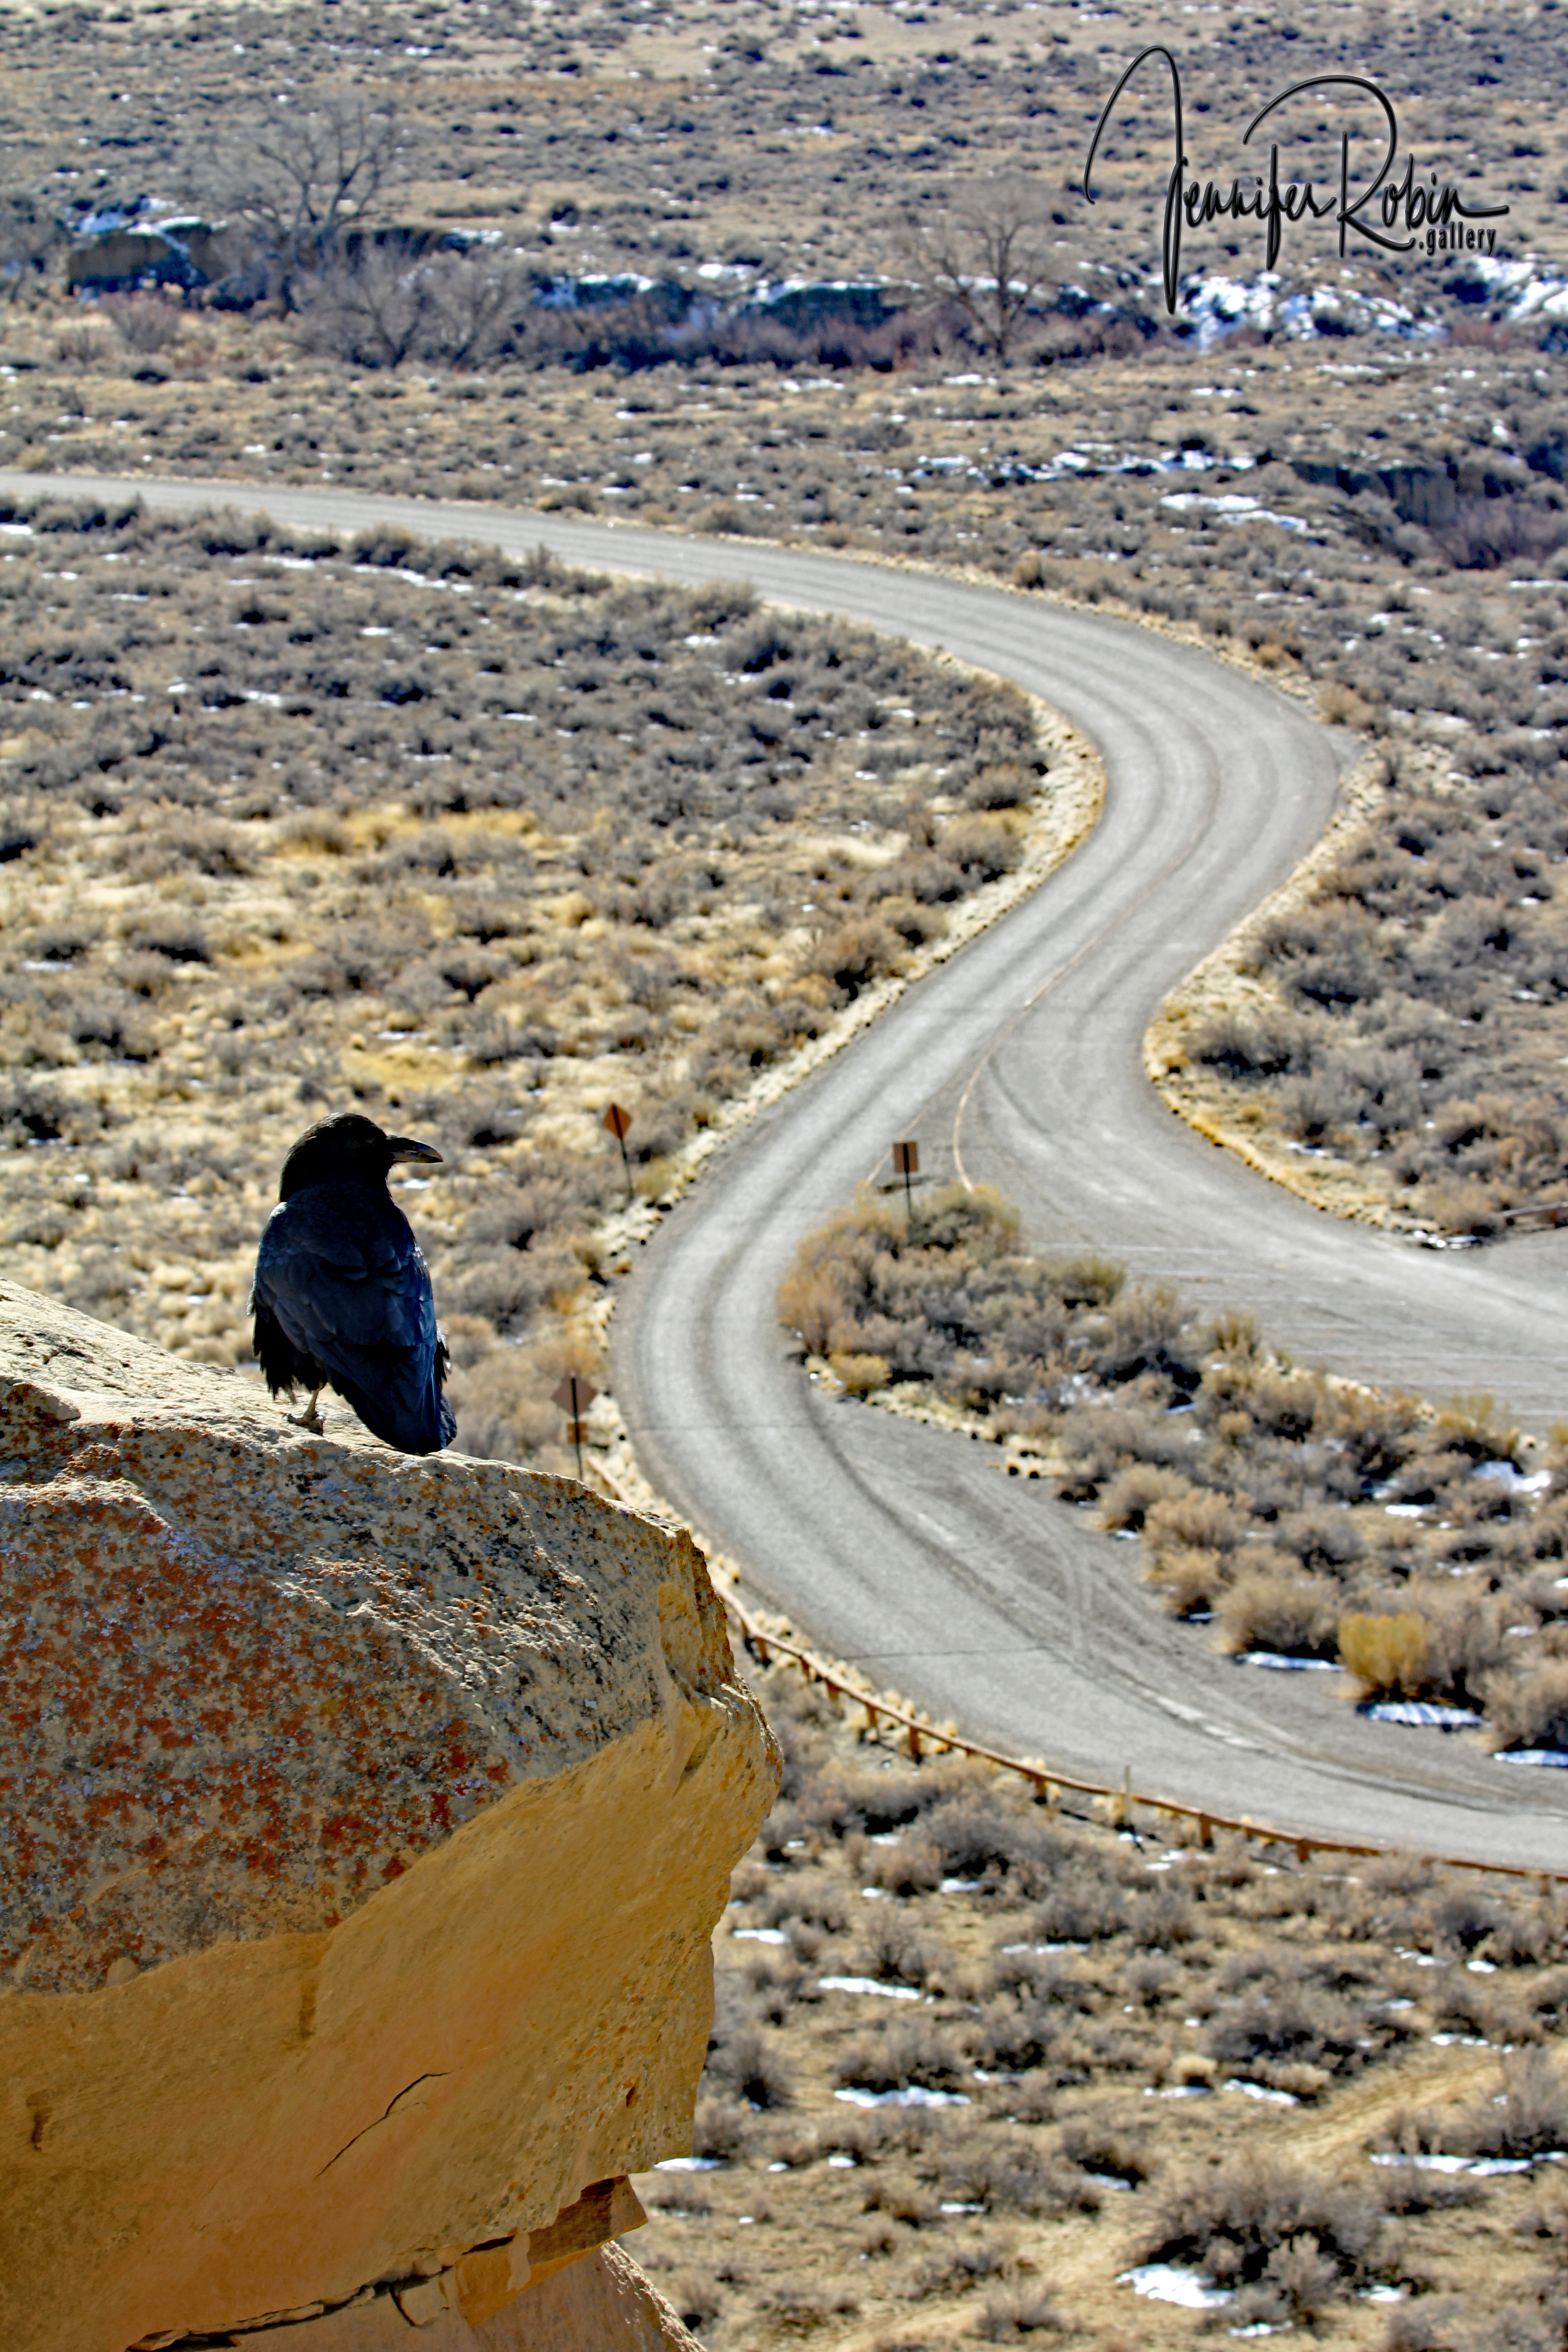 A raven overlooks the ruins and roadways for something to scavenge at Chaco Canyon in Nageezi, NM